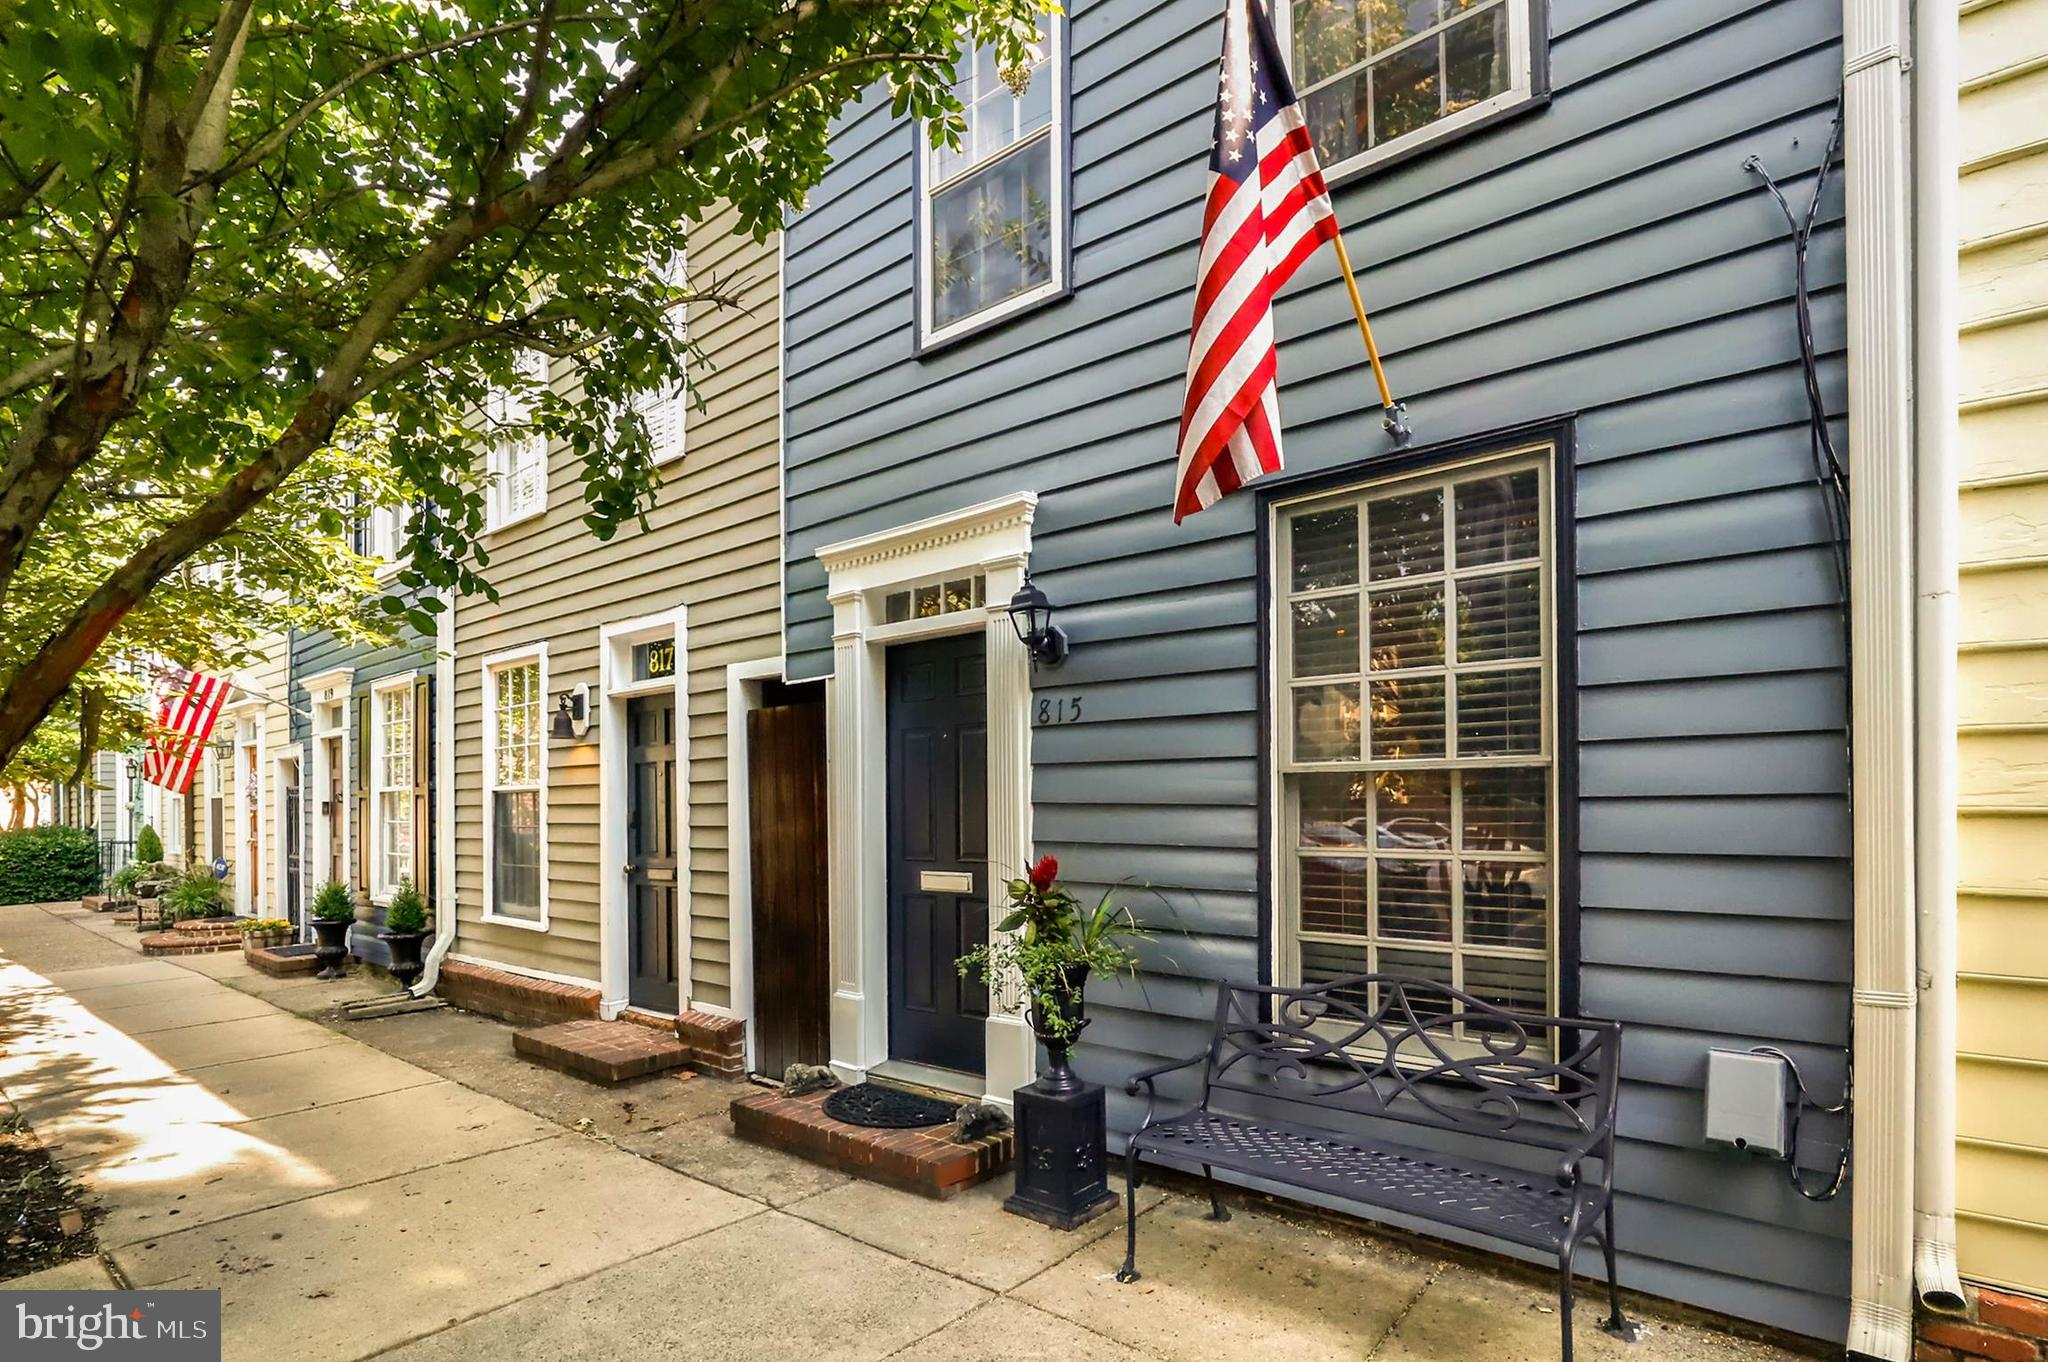 *off street parking in the back yard, gate would need to be changed. Owners still have all of the tricks for the parking pad that could be put back* Beautiful 1900 Victorian, historic townhome in Old Town Alexandria.  6 blocks to Braddock Rd. Metro, 6 blocks to the waterfront, metro bus stops close by.  Surrounded by history, entertainment, dining, and convenience.  Original wood floors, beautiful patio with pergola, fully fenced back yard with an alley for easy access.  Enjoy dining and entertaining in privacy in the backyard, built-in grill.  Updated bathrooms and kitchen.   New outdoor fencing, new exterior landscaping, new trees, painted exterior, outdoor bar, and drill area. **You can add a parking space in the back within property lines**